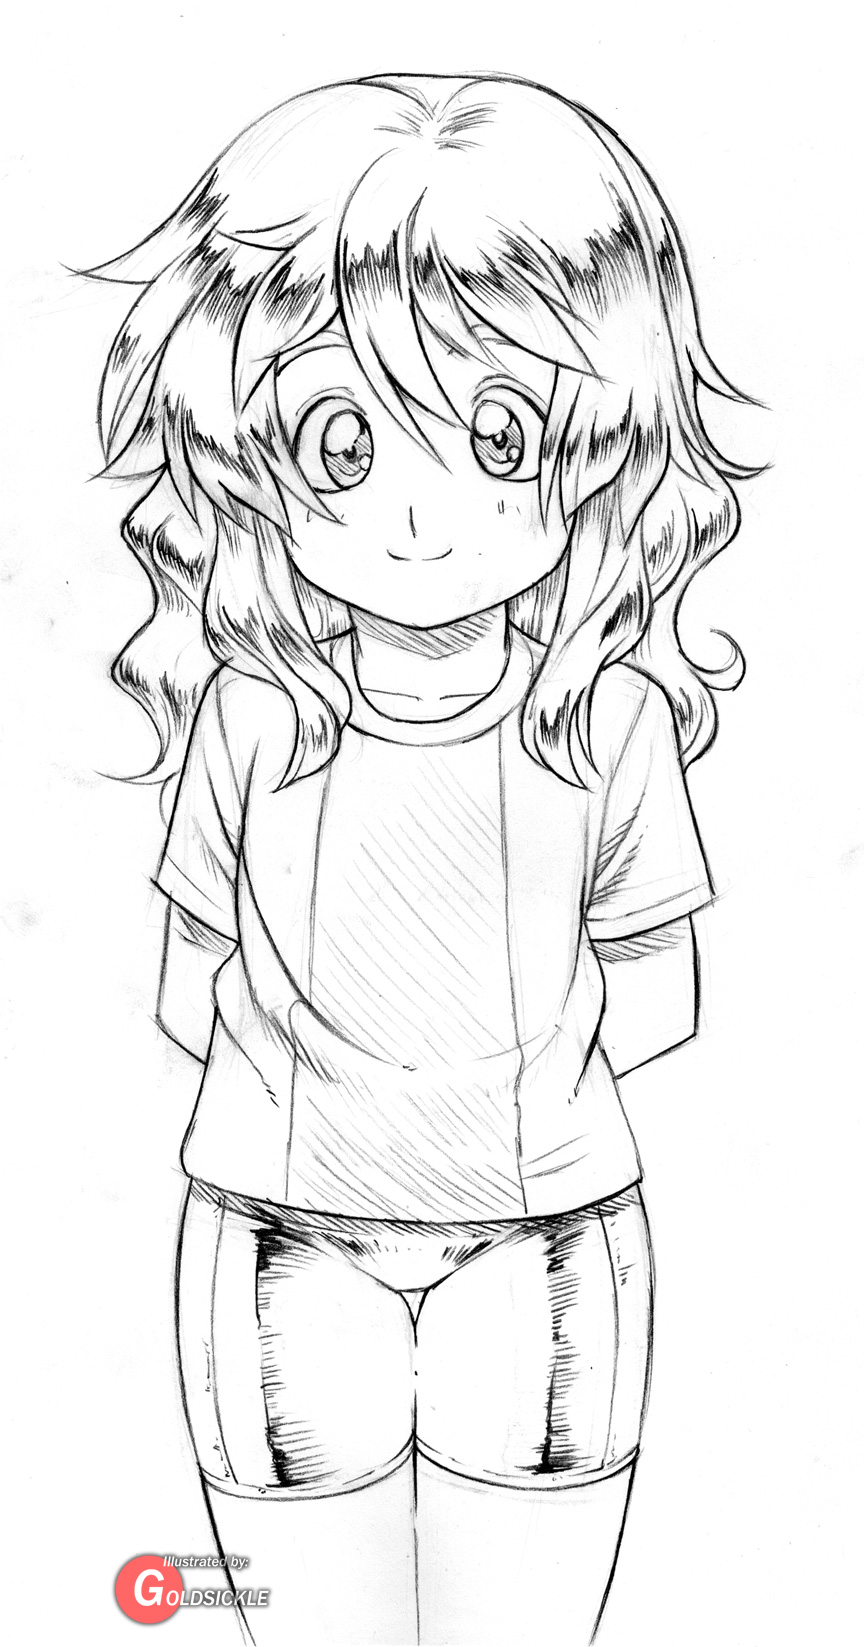 Wavy Haired Girl